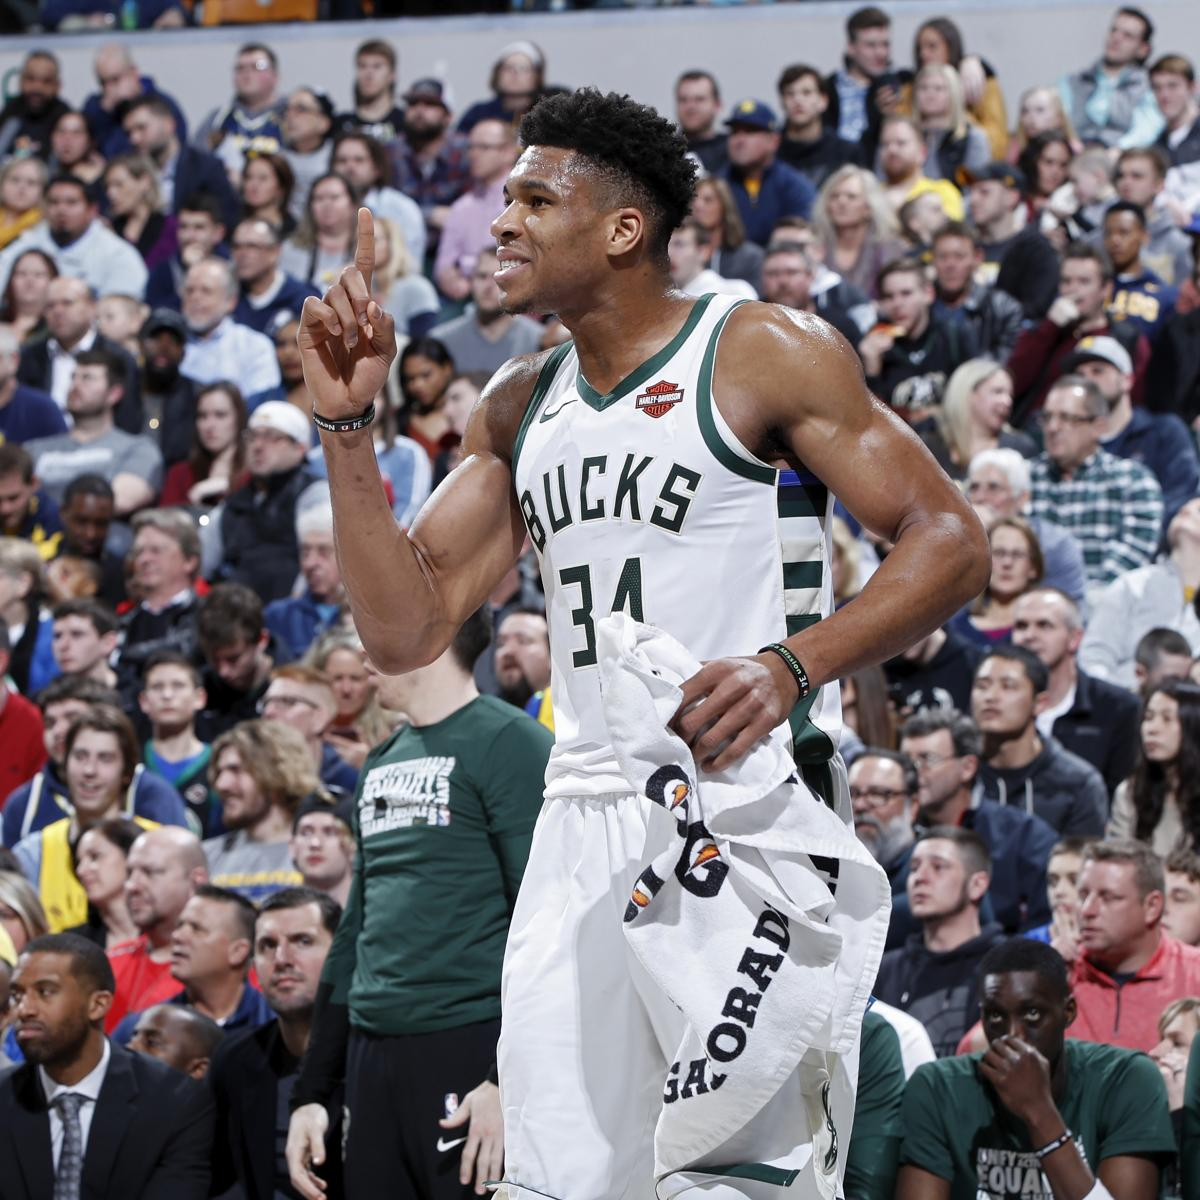 NBA All-Star Game 2019: LeBron Vs. Giannis Rosters, TV